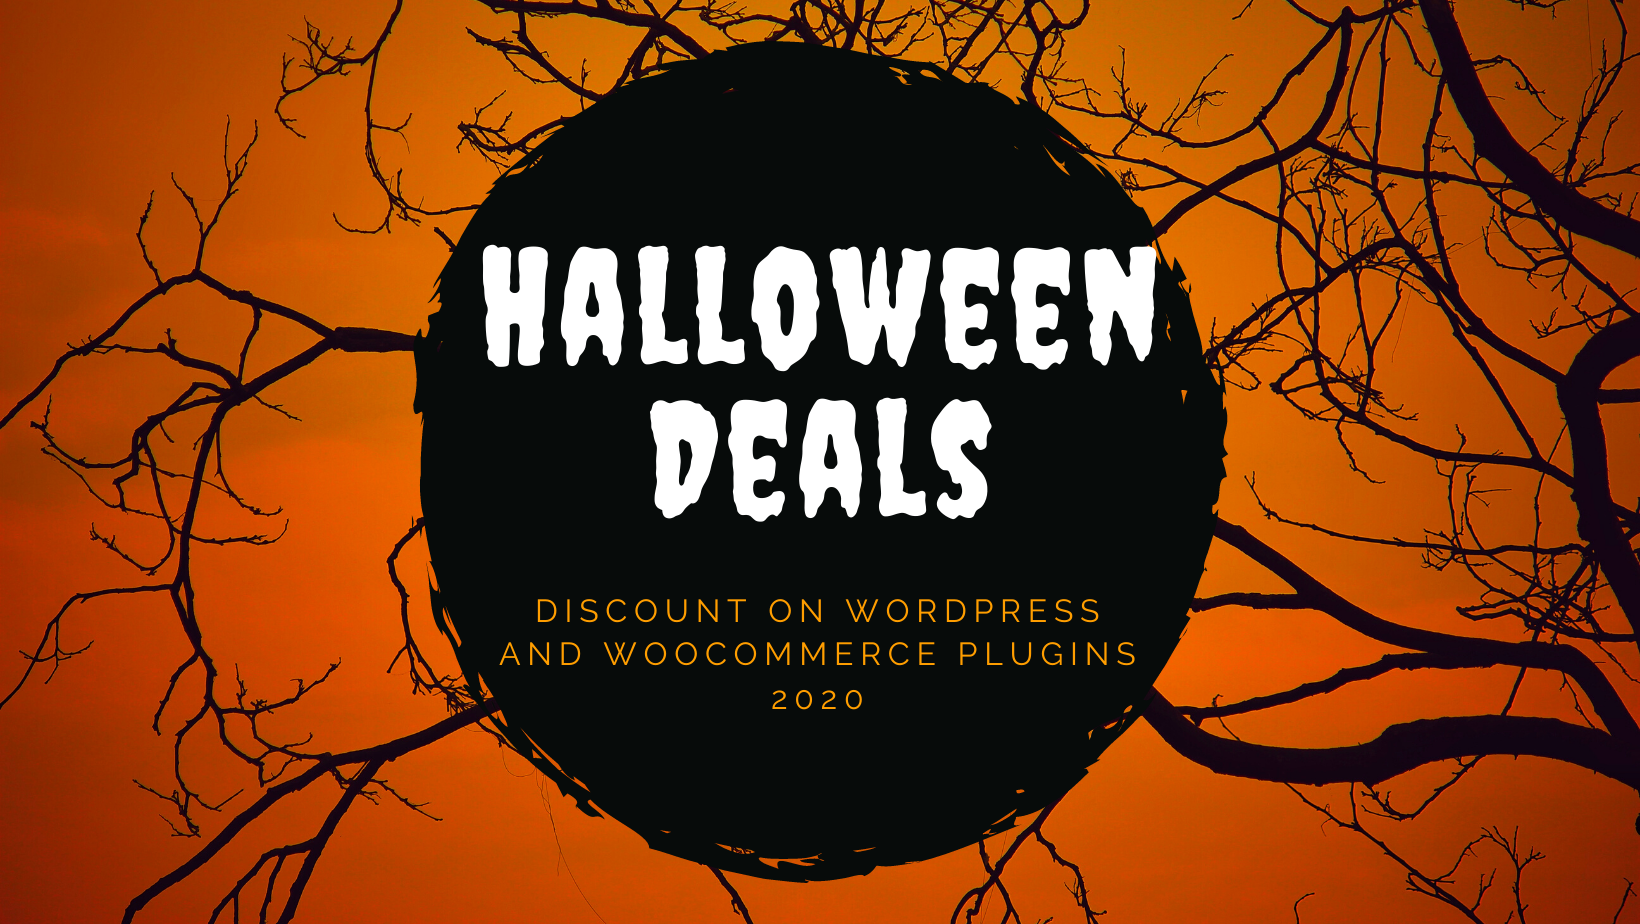 Best Halloween Deals and Discount on WordPress and WooCommerce Plugins 2020